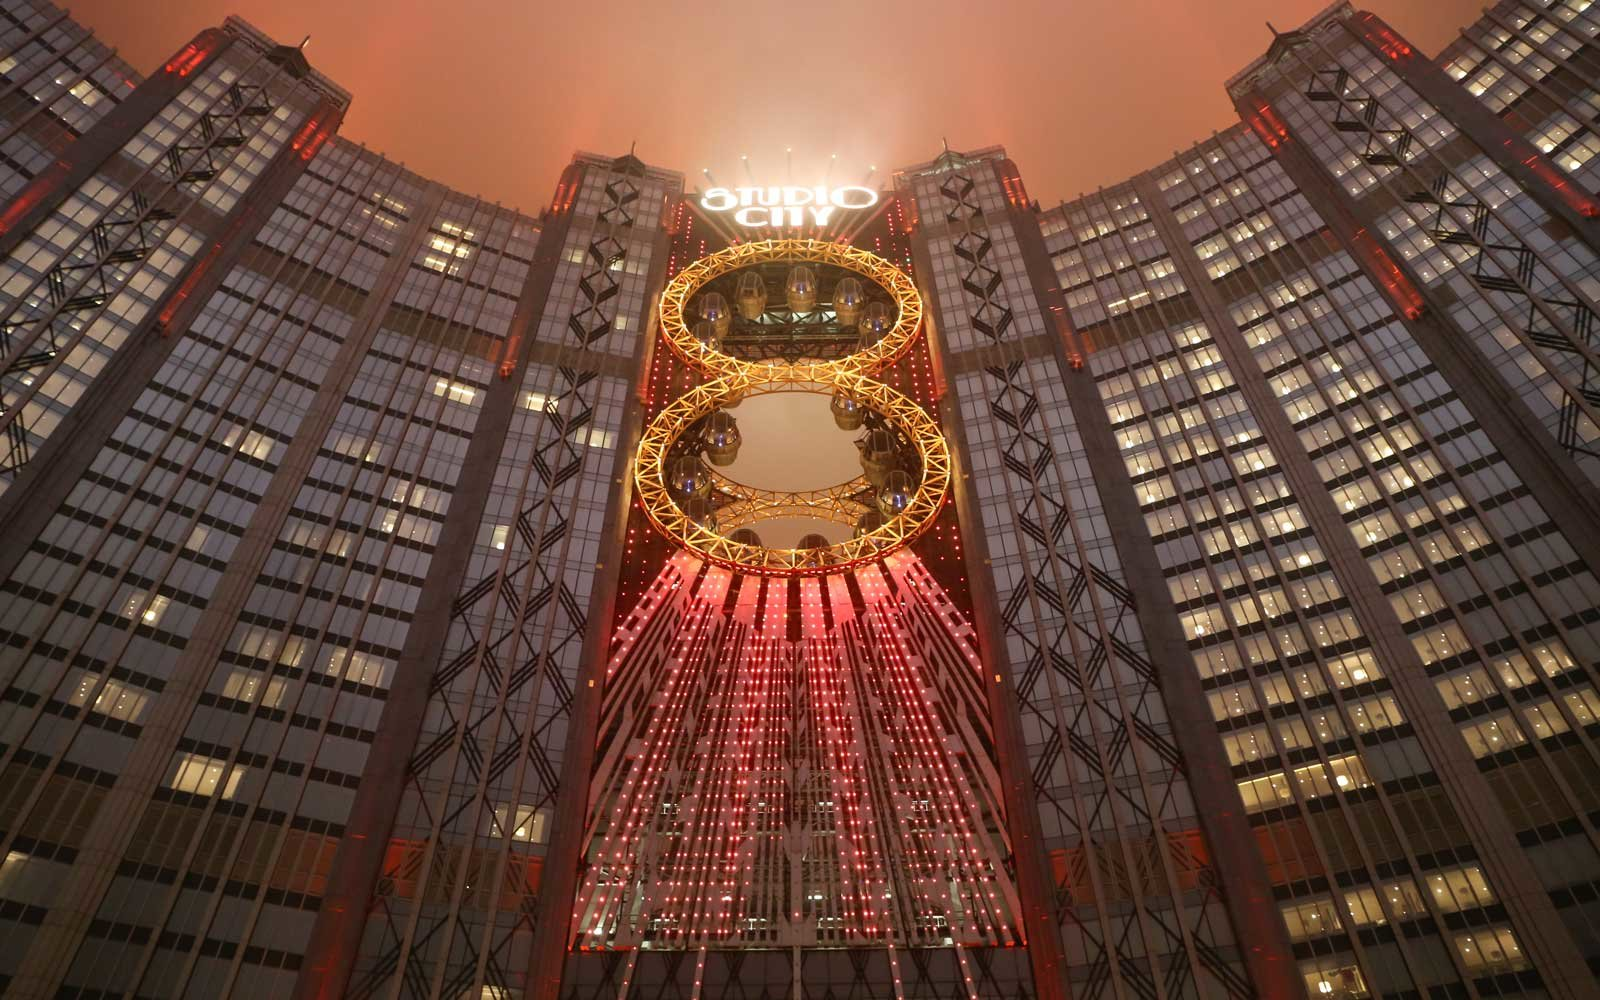 The number 8 shape Golden Reel Ferris wheel in Studio City Macau